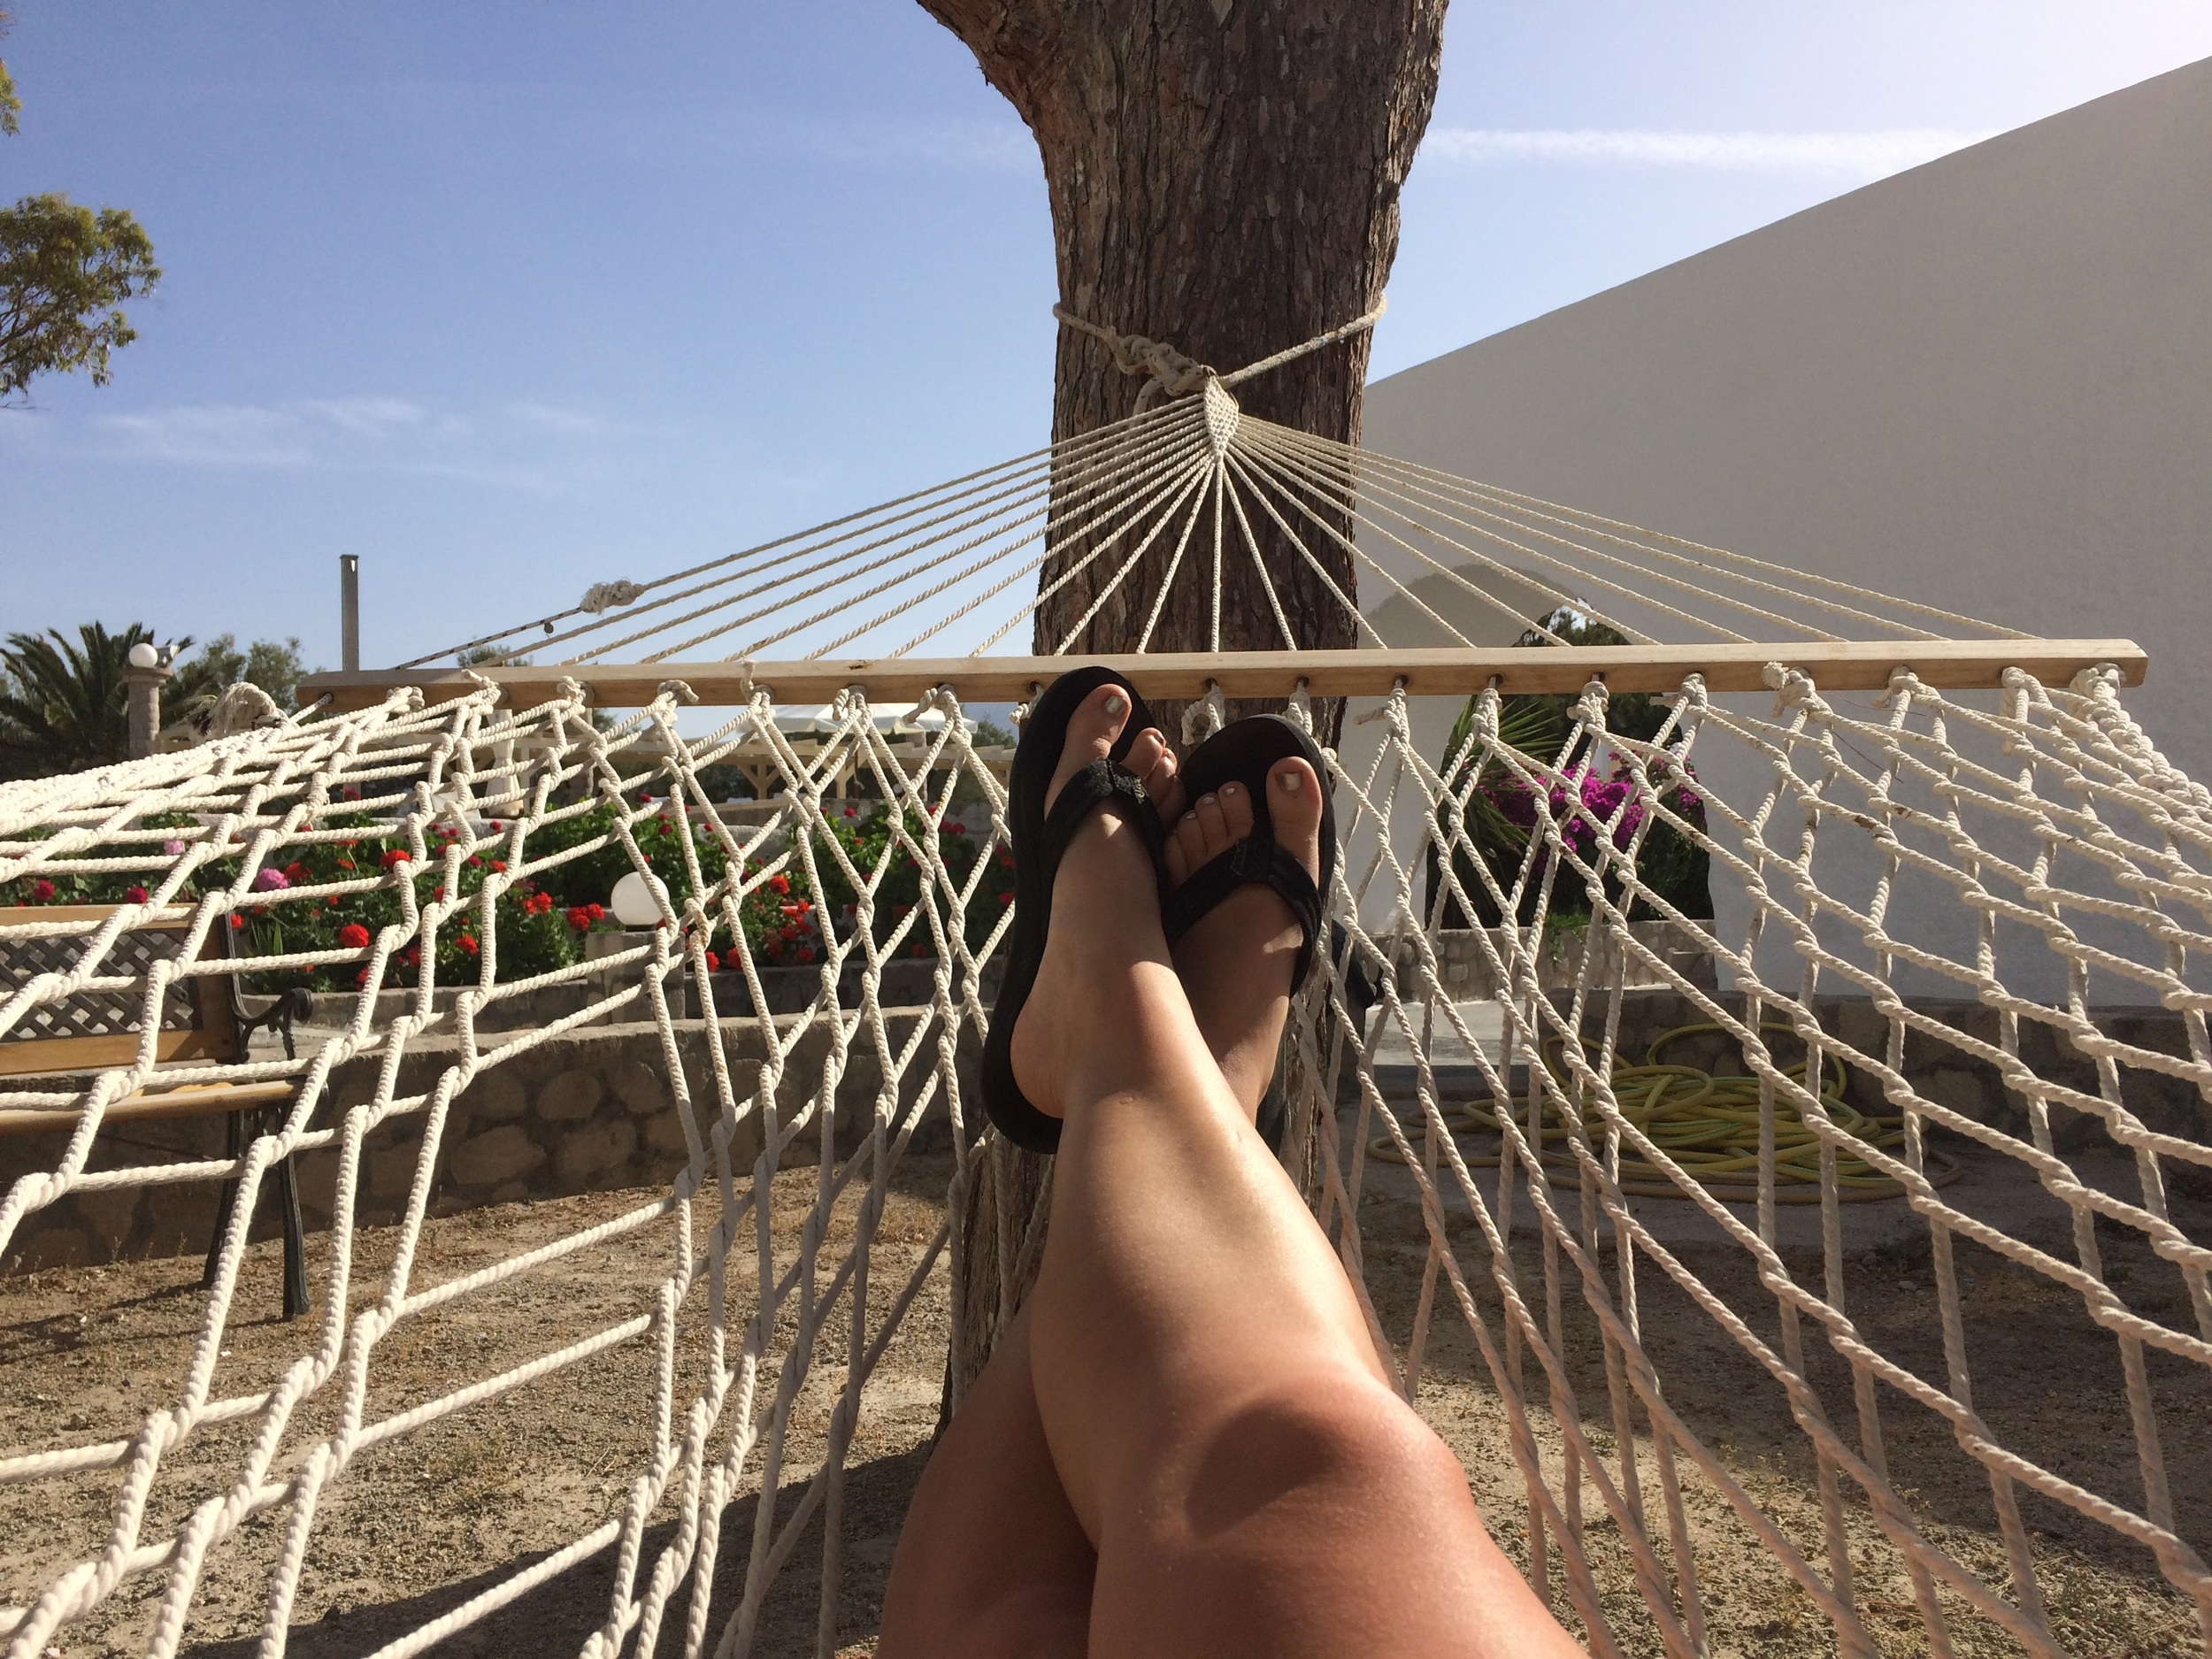 Hammocks find me in life. They just do.